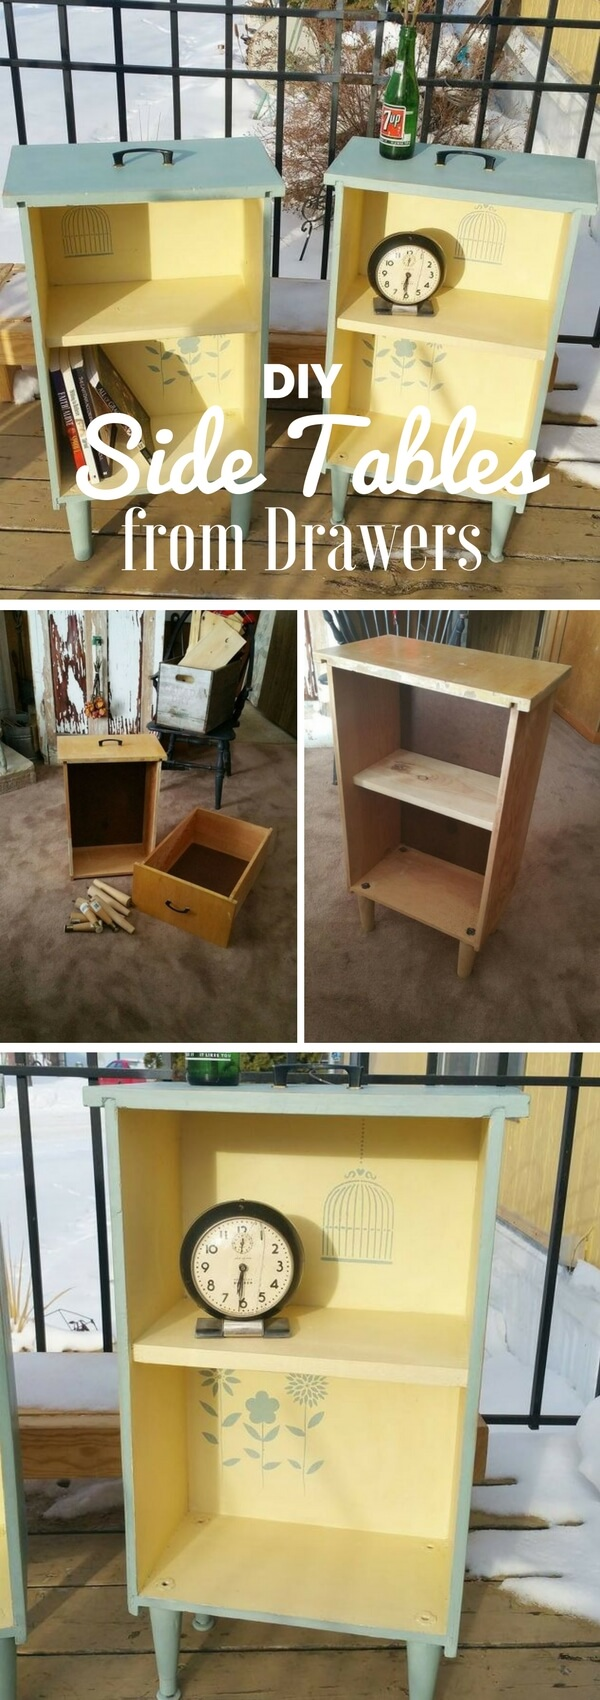 Make Side Tables Out of Old Drawers